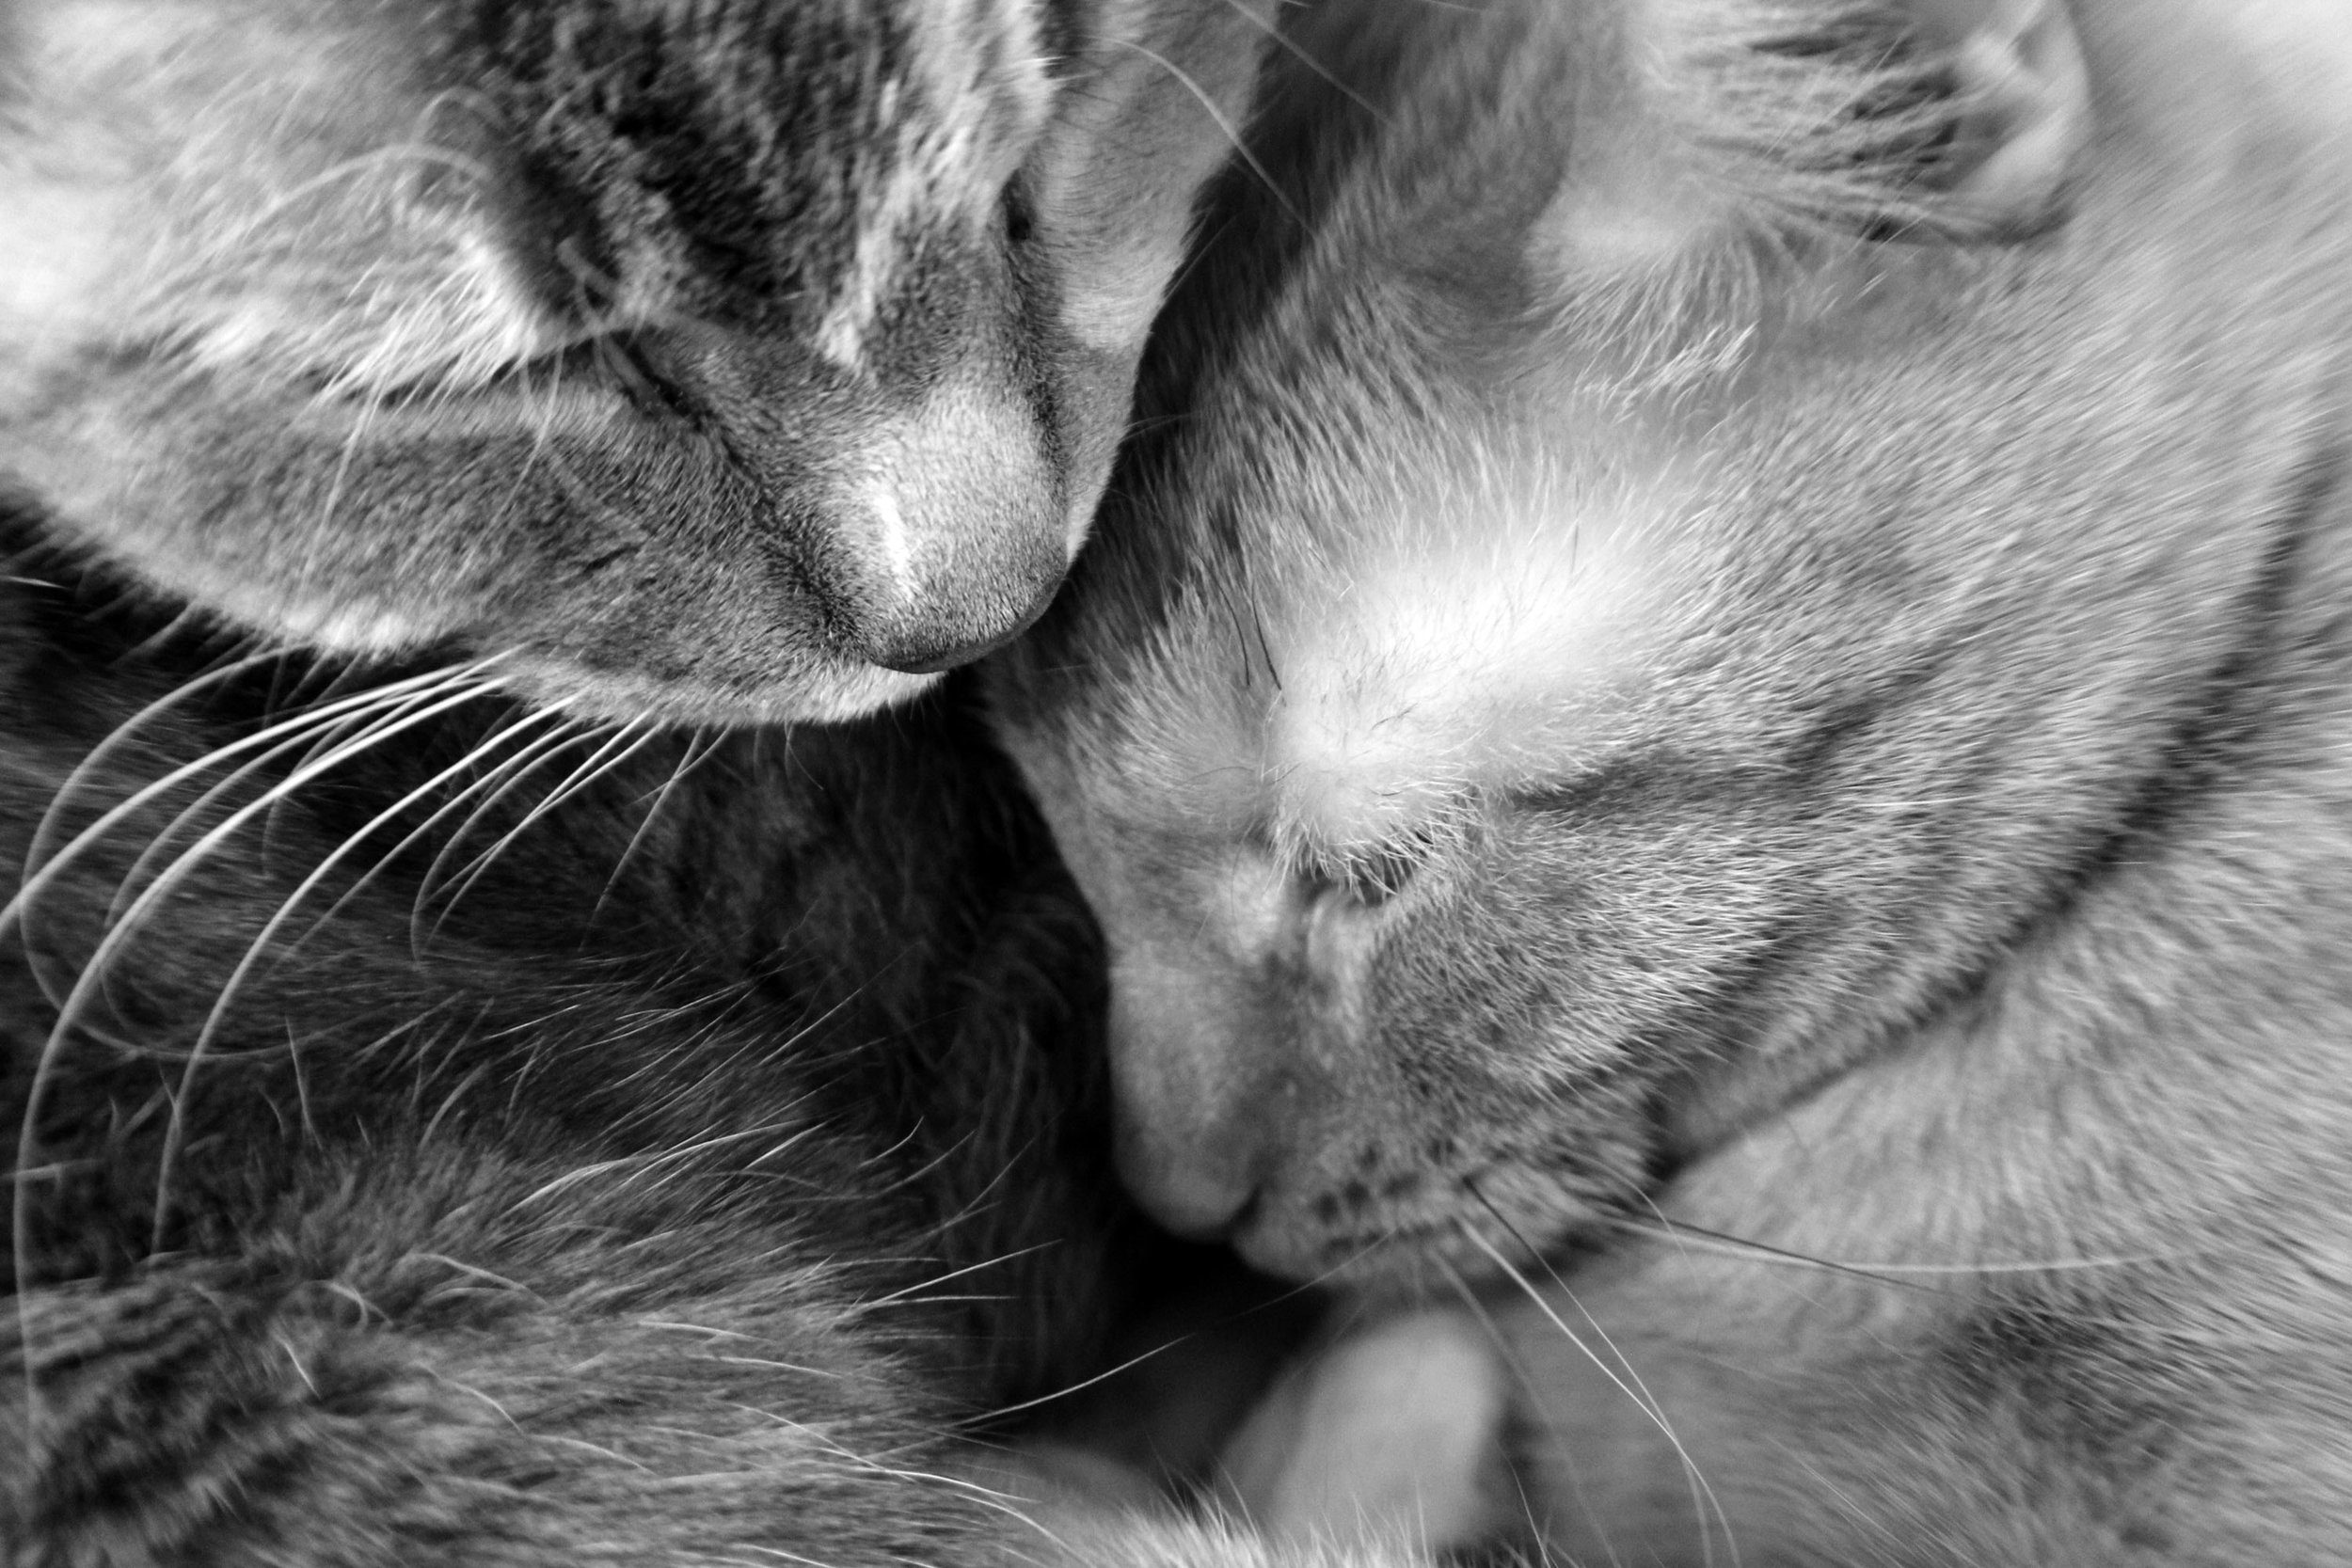 23. WEBSITE - misc. and cats 204 - BW Auto Retouched - 2000 on Vertical.jpg